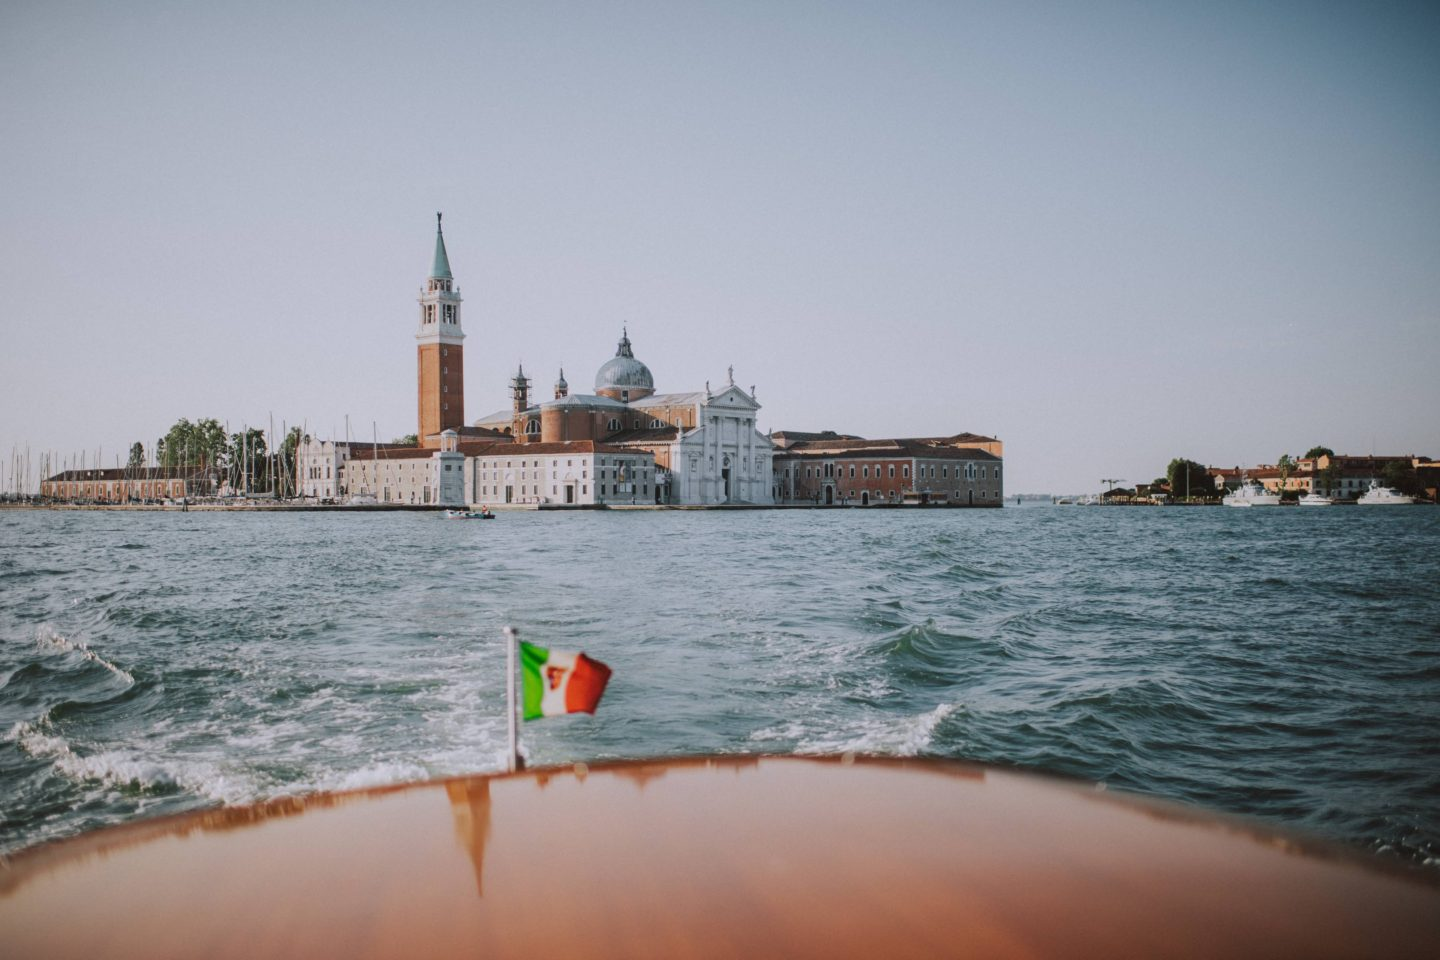 best places weddings honeymoon engagement photos venice san giorgio maggiore